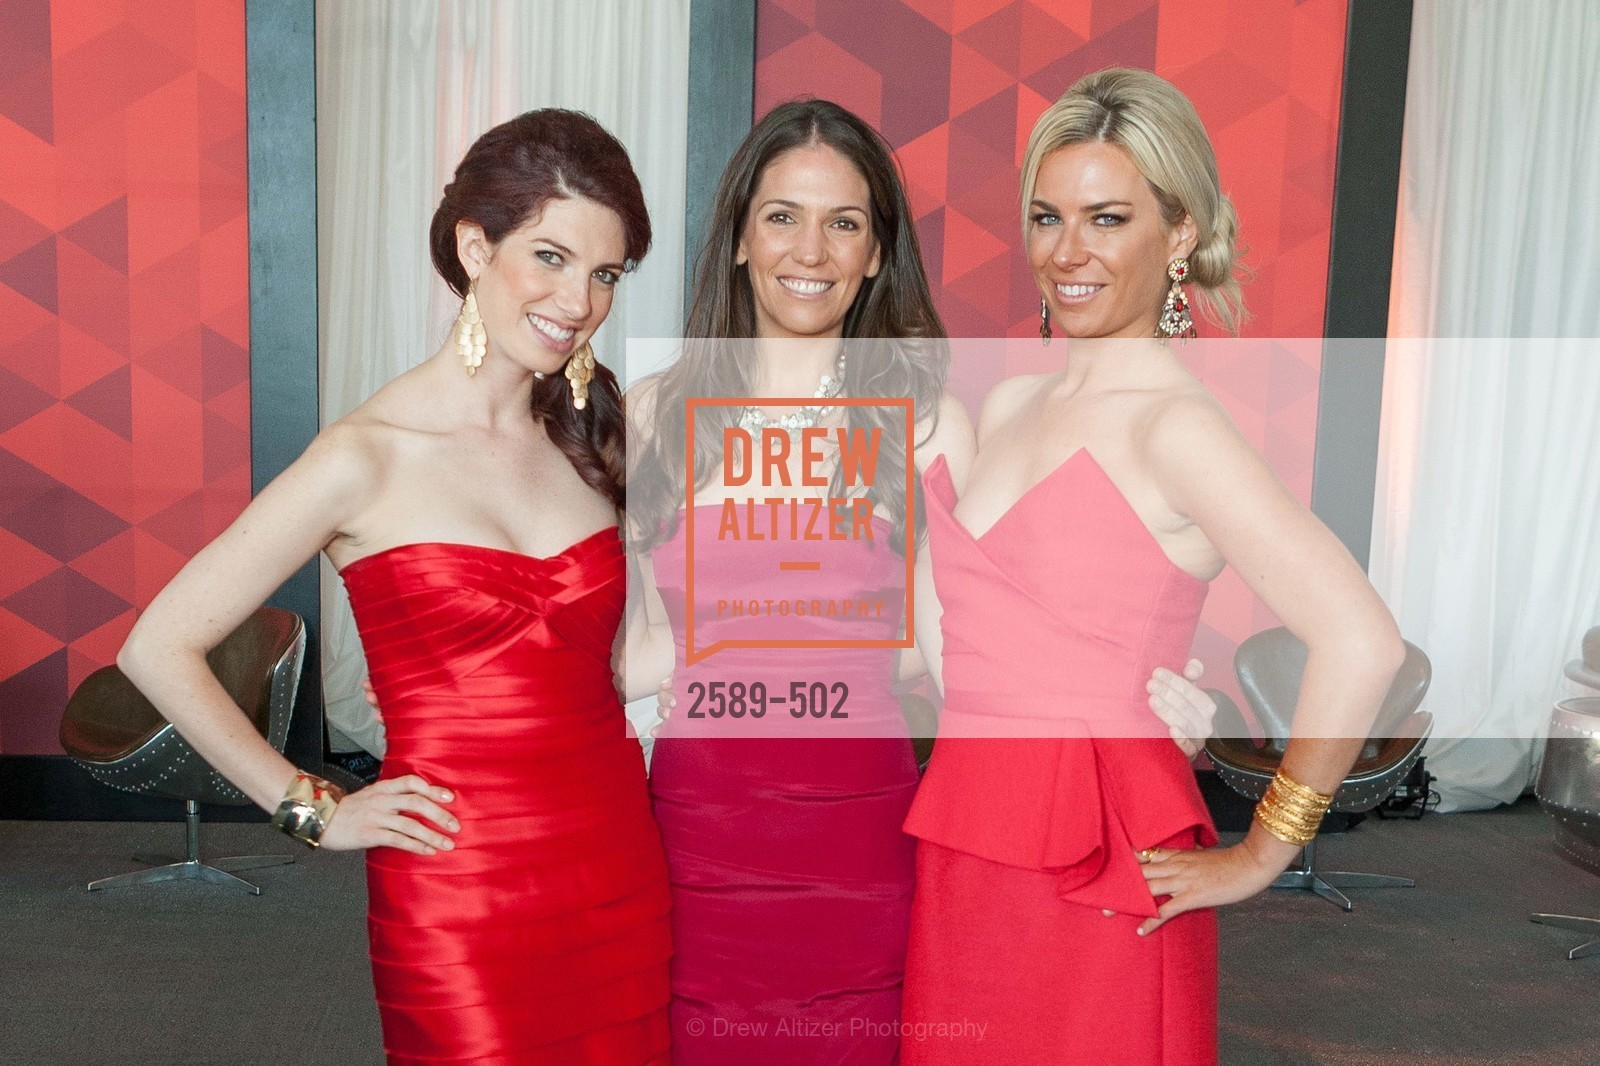 Jessica Young, Susie Hall, Colby Hallen, 2014 RED CROSS Gala Honoring Paula Downey as the American Red Cross Bay Area Chapter Humanitarian CEO of the Year, US. Treasure Island (The Great Lawn), April 5th, 2014